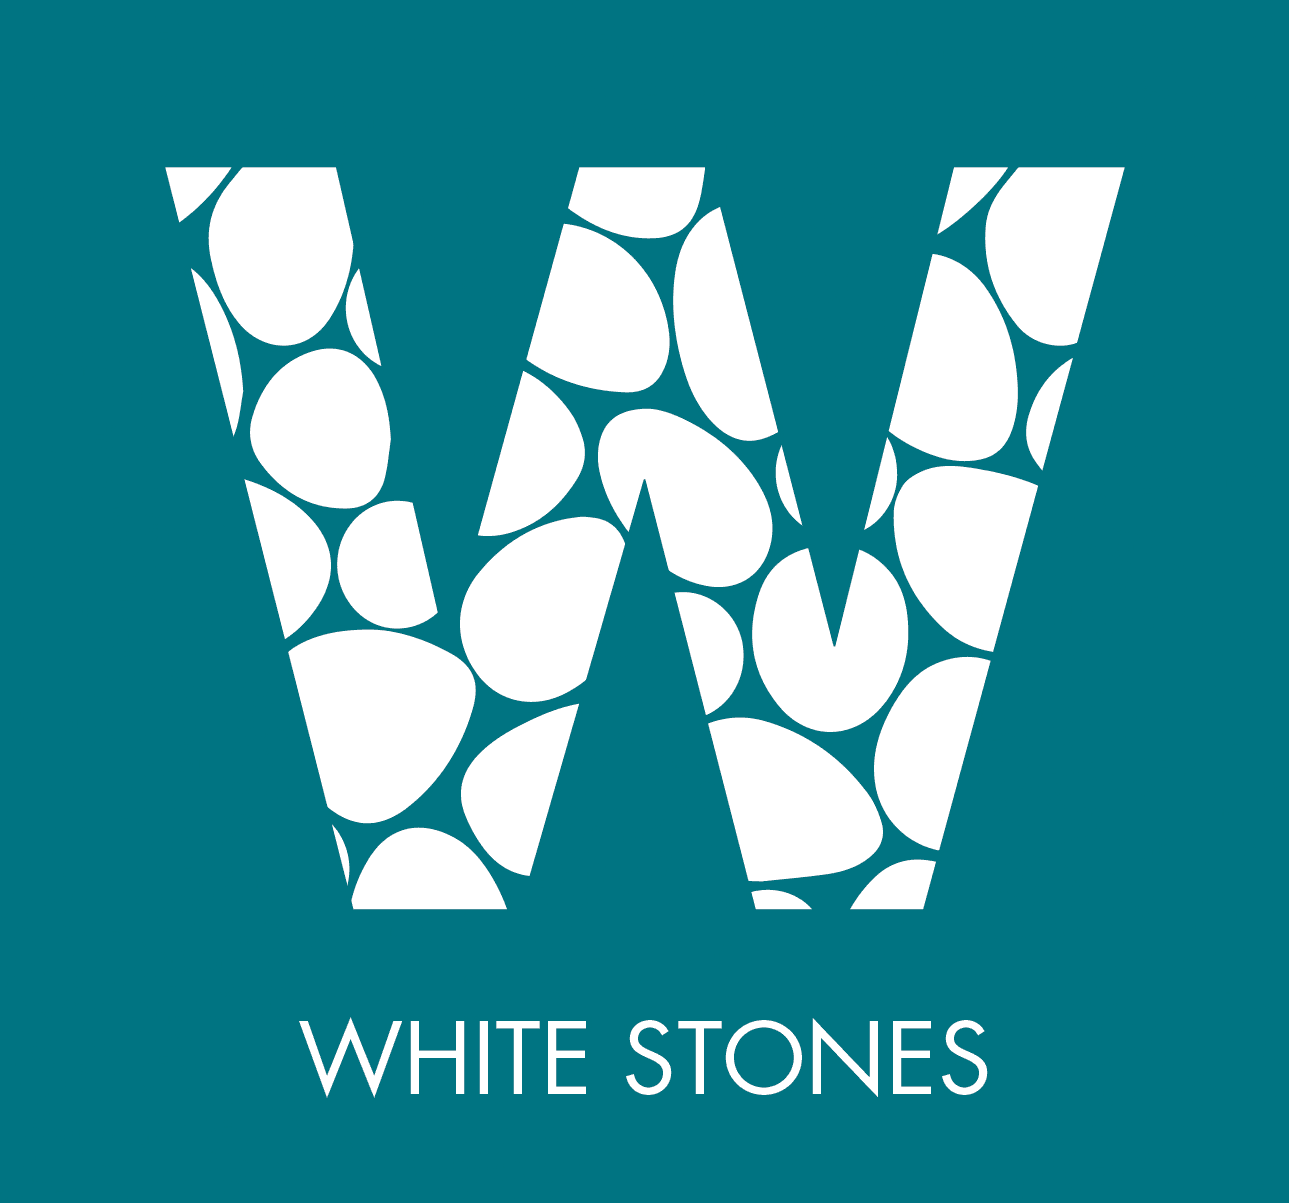 White Stones studios and art cafe gallery Portland Dorset